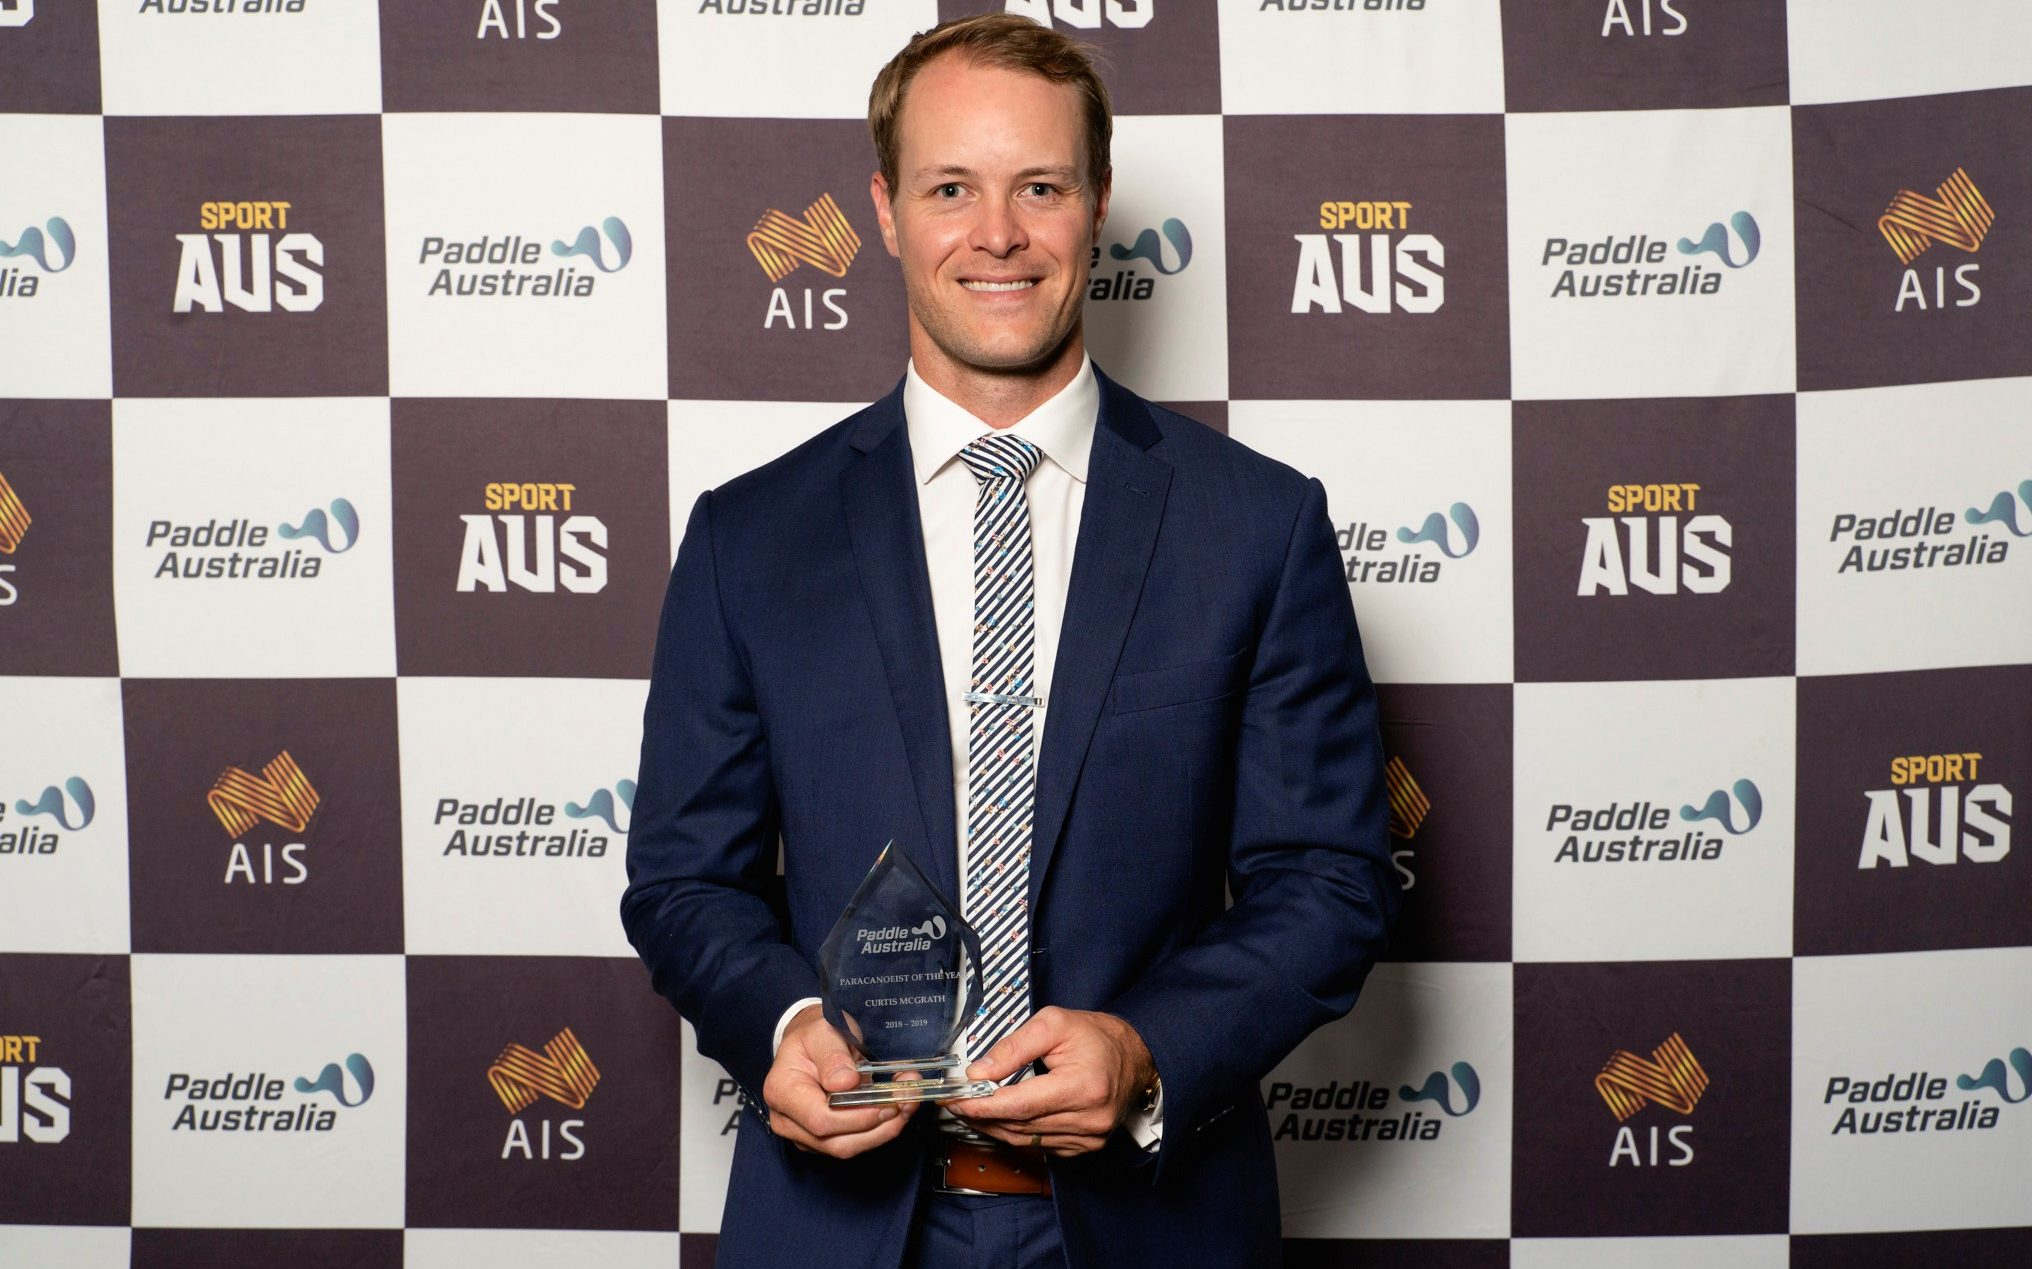 McGrath achieves top gong at Paddle Australia Awards